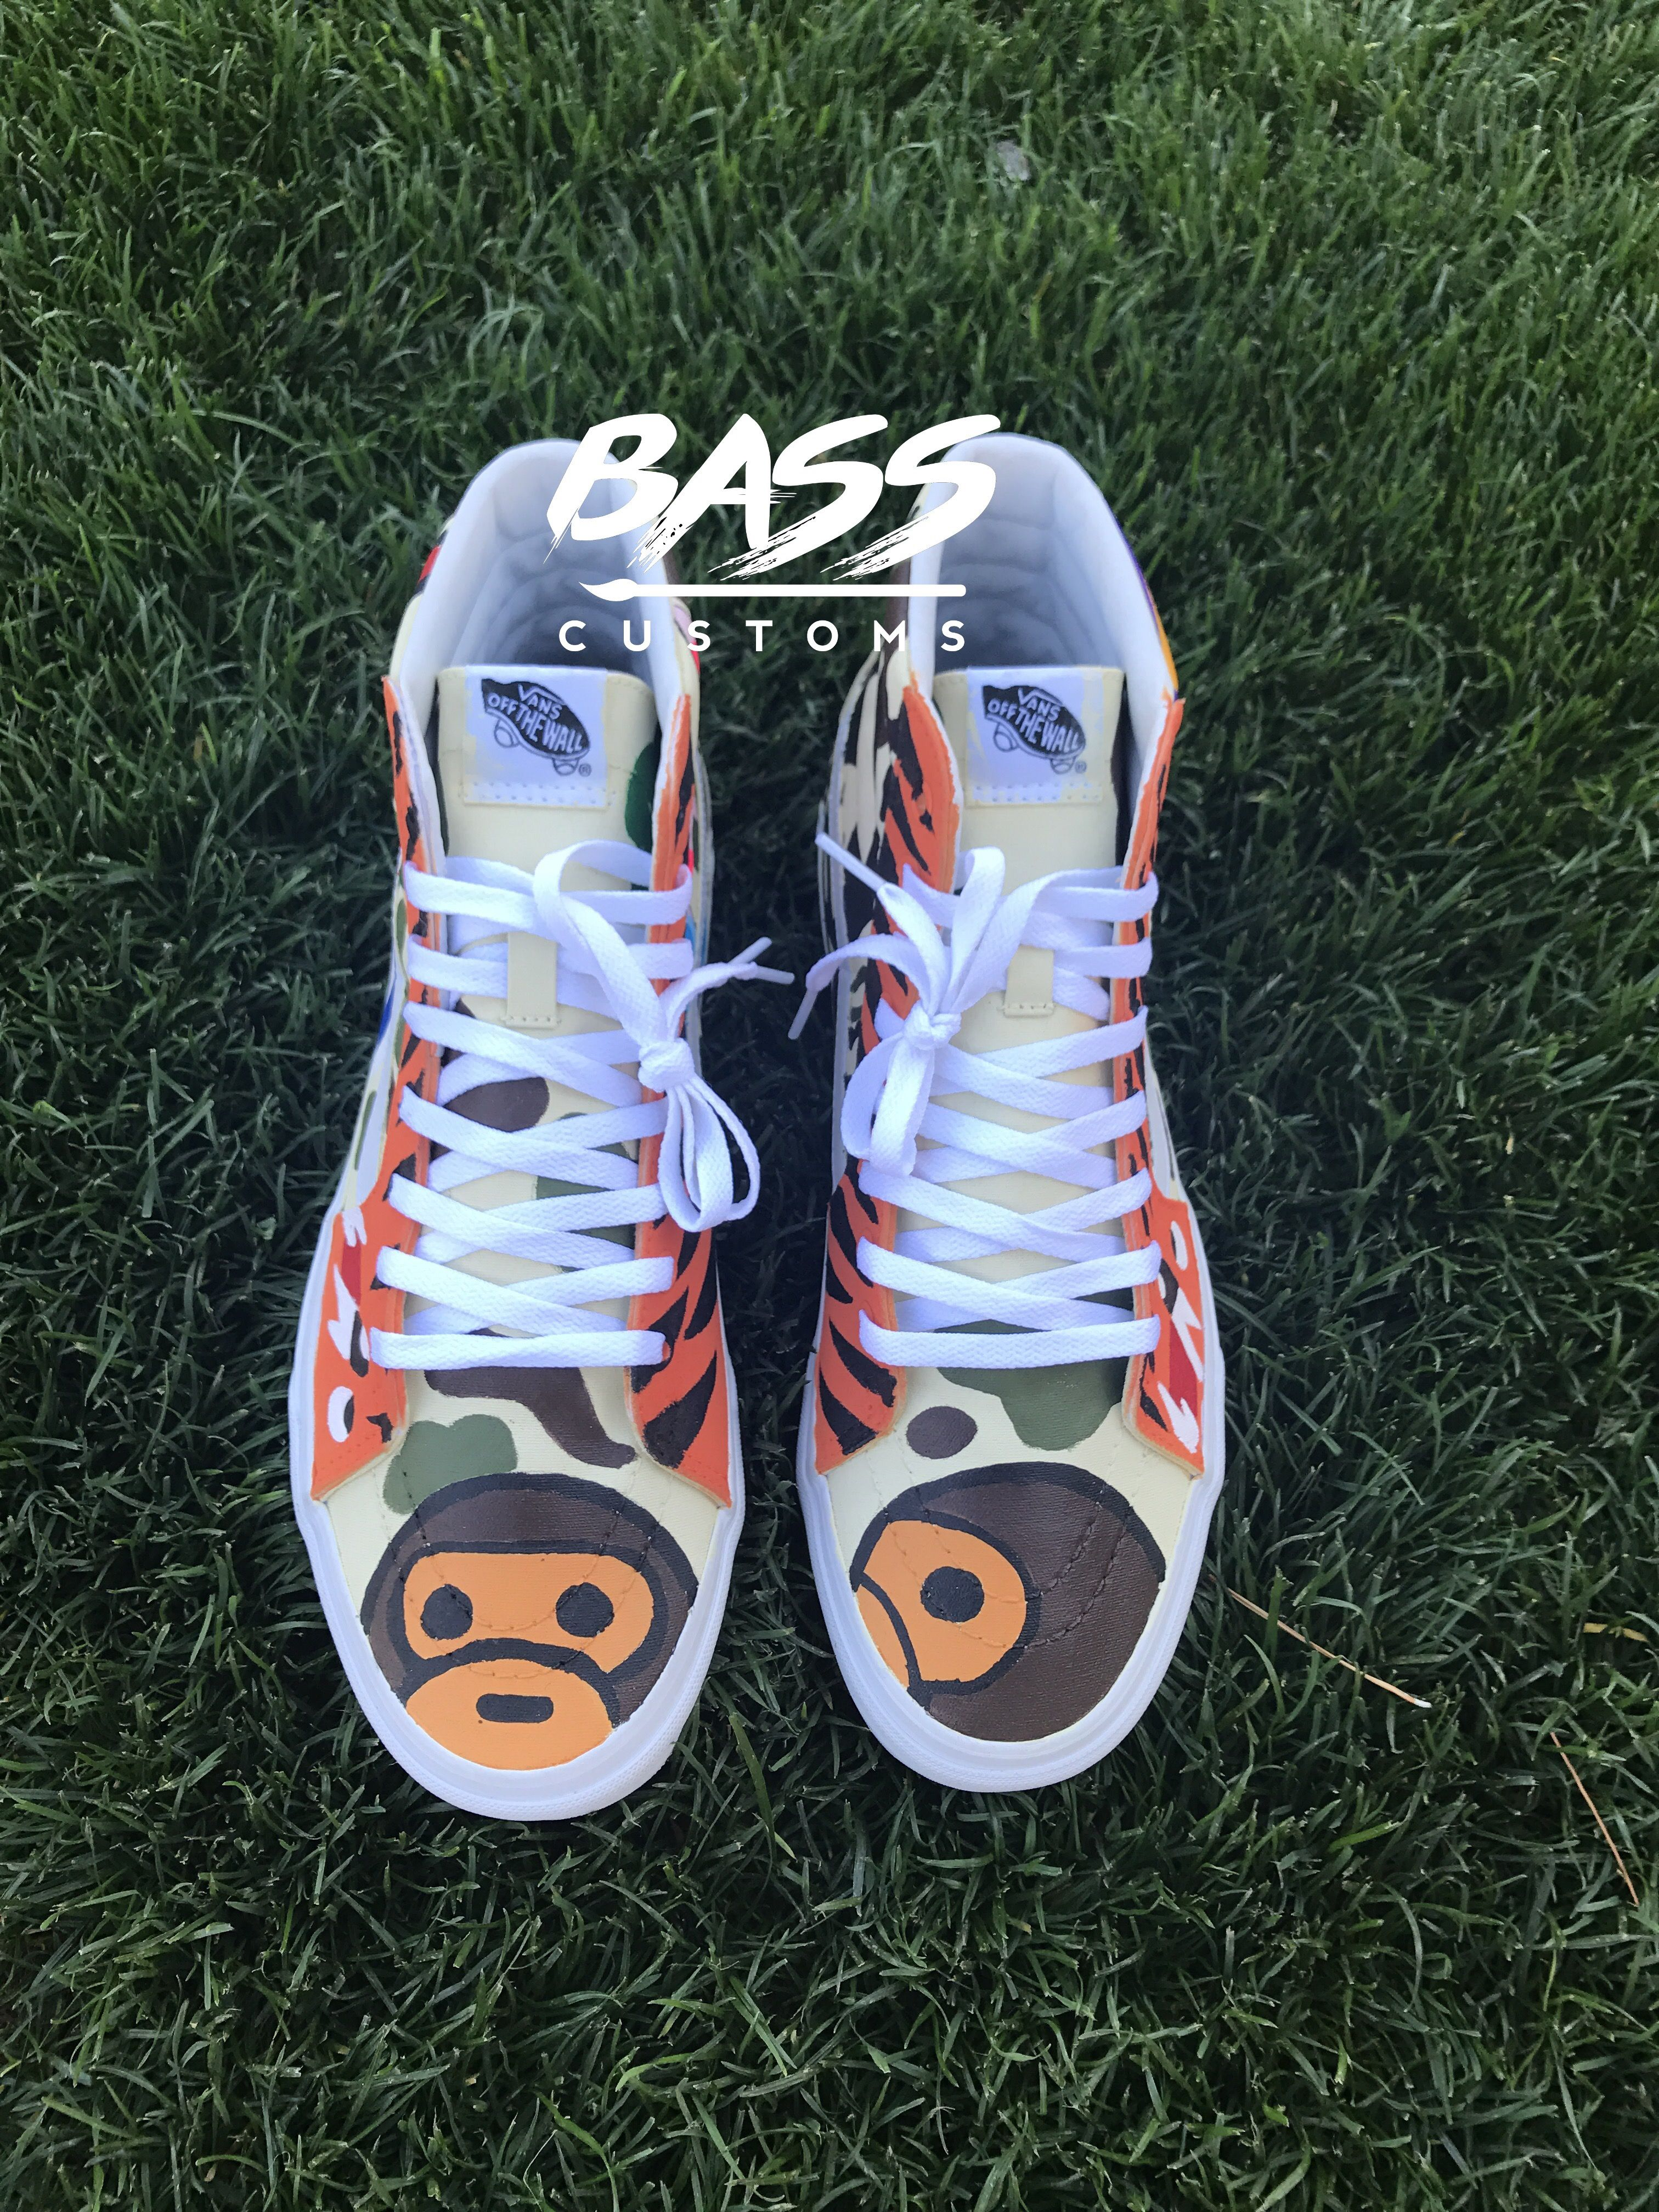 e7426f6dc86 Custom Bape vans Instagram  BassCustoms BassCustoms.com shop ...